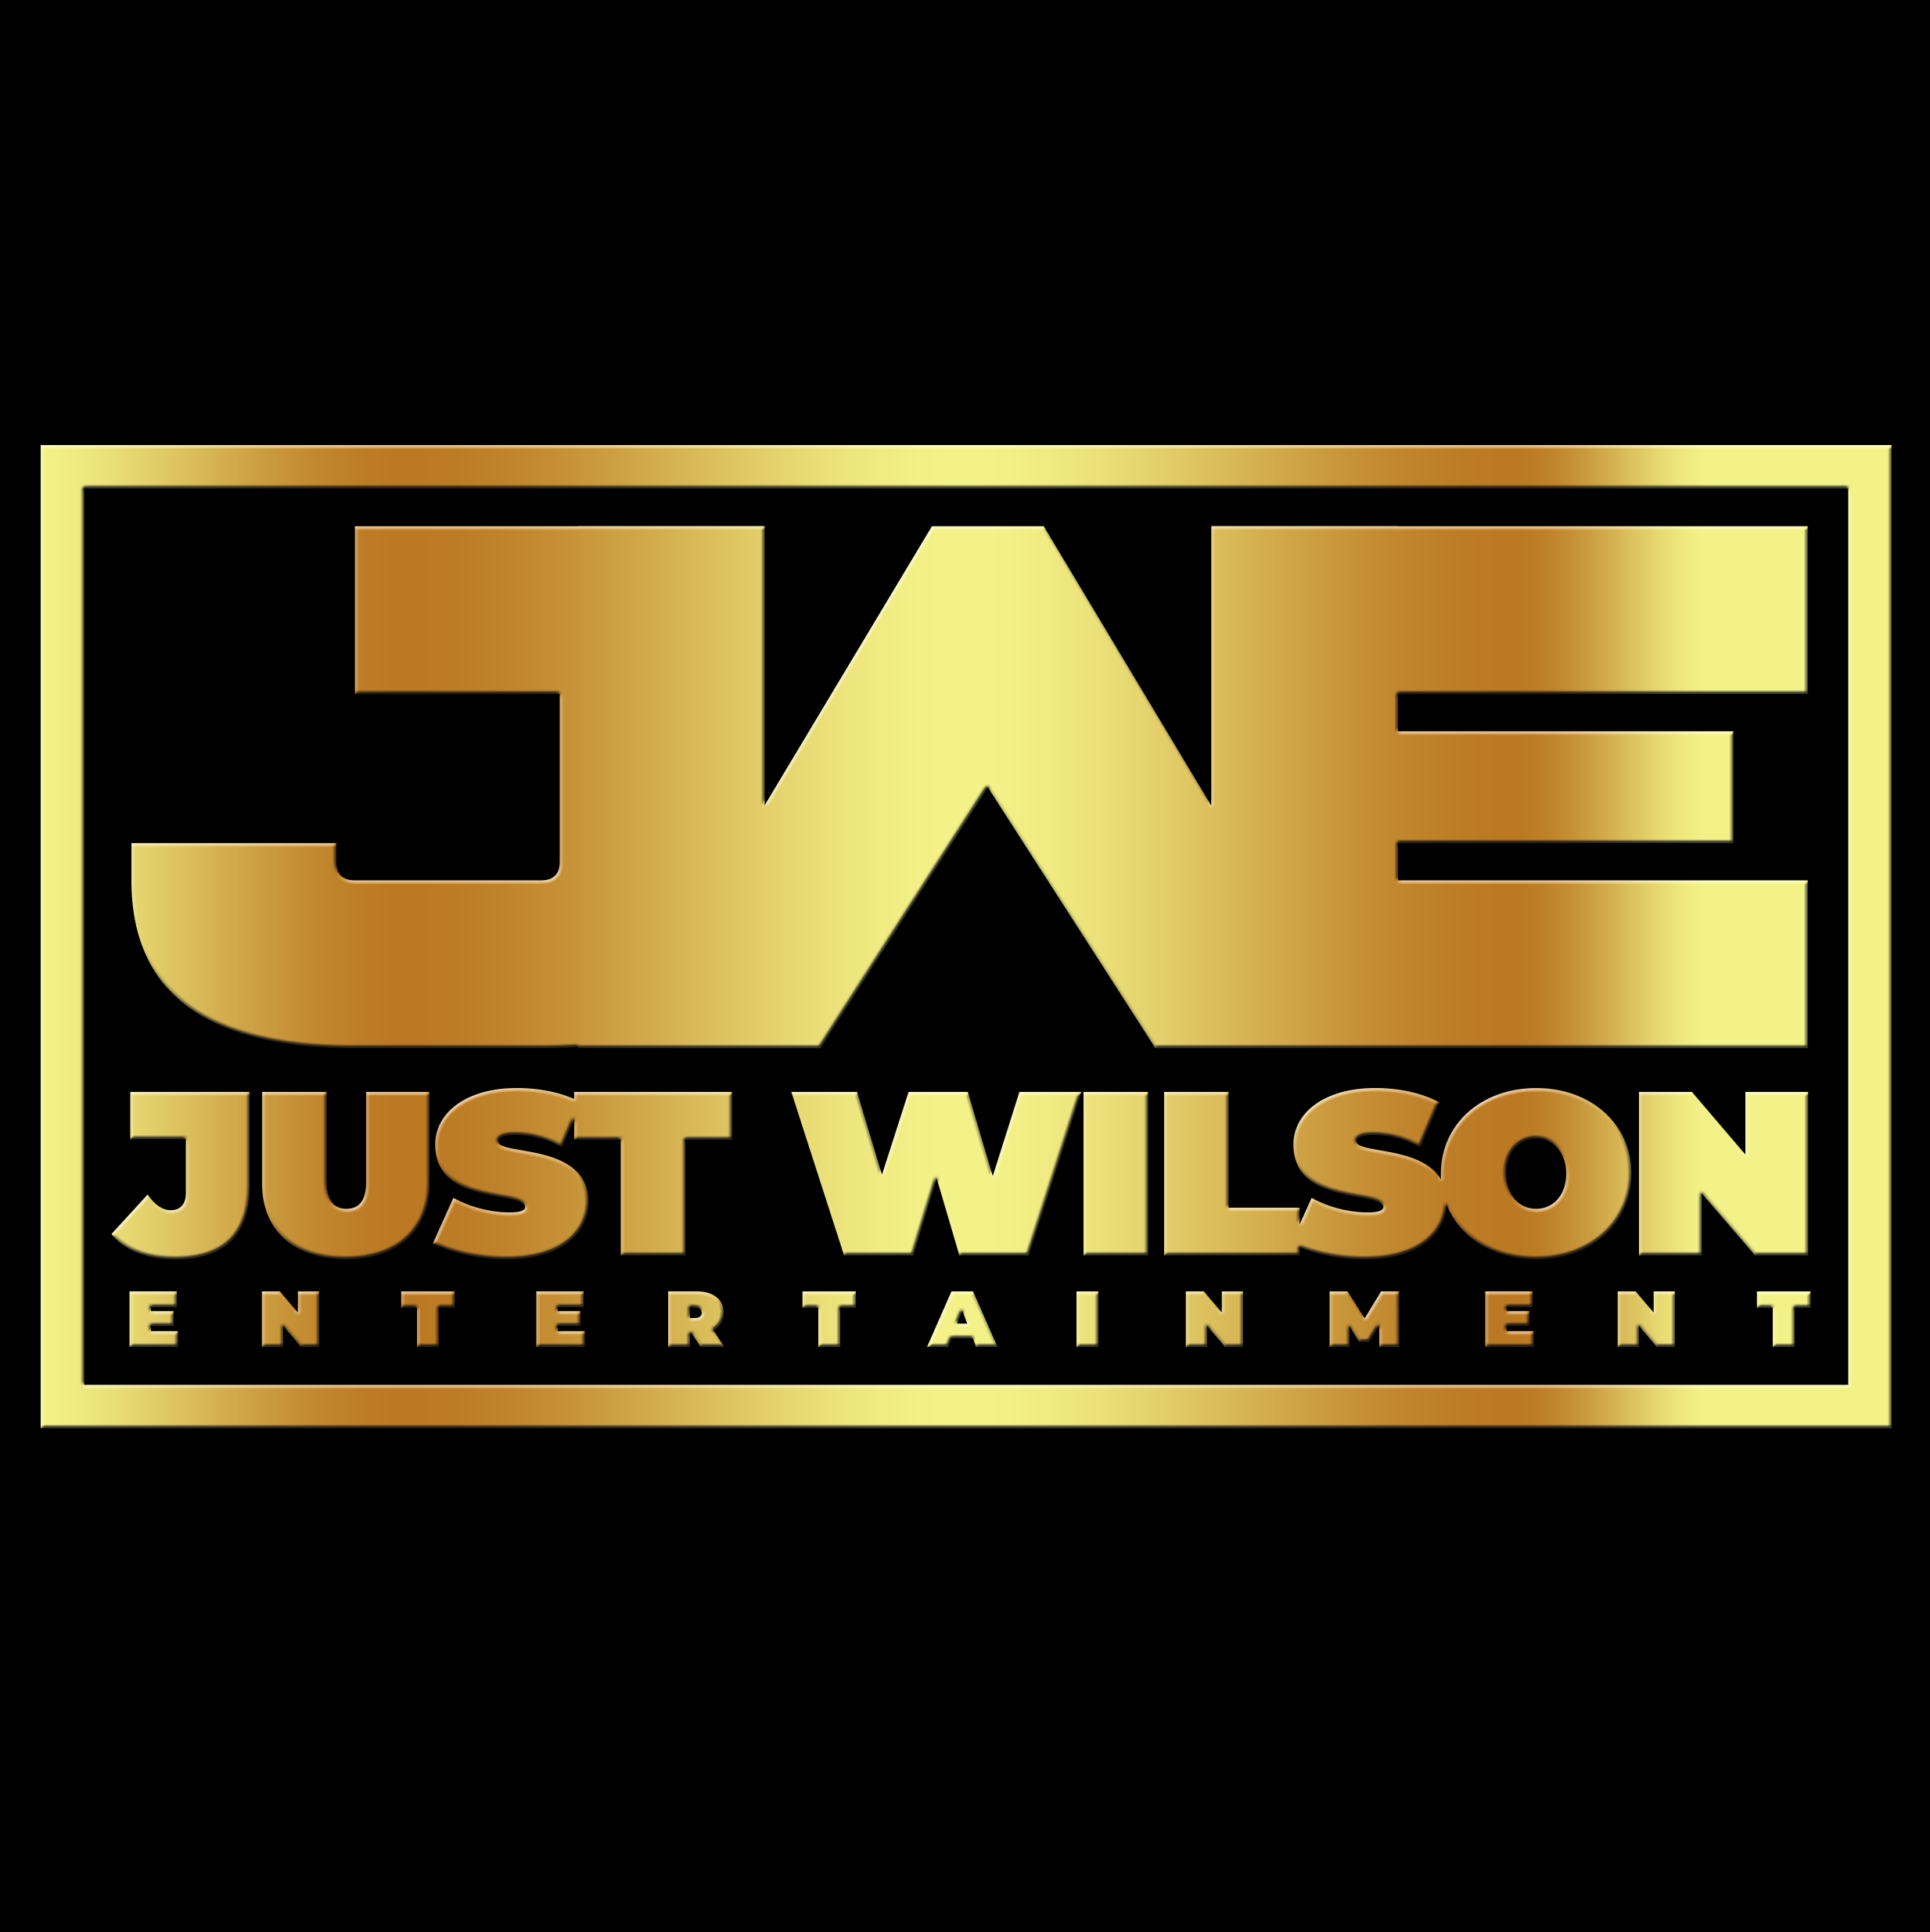 Just Wilson Entertainment, profile image